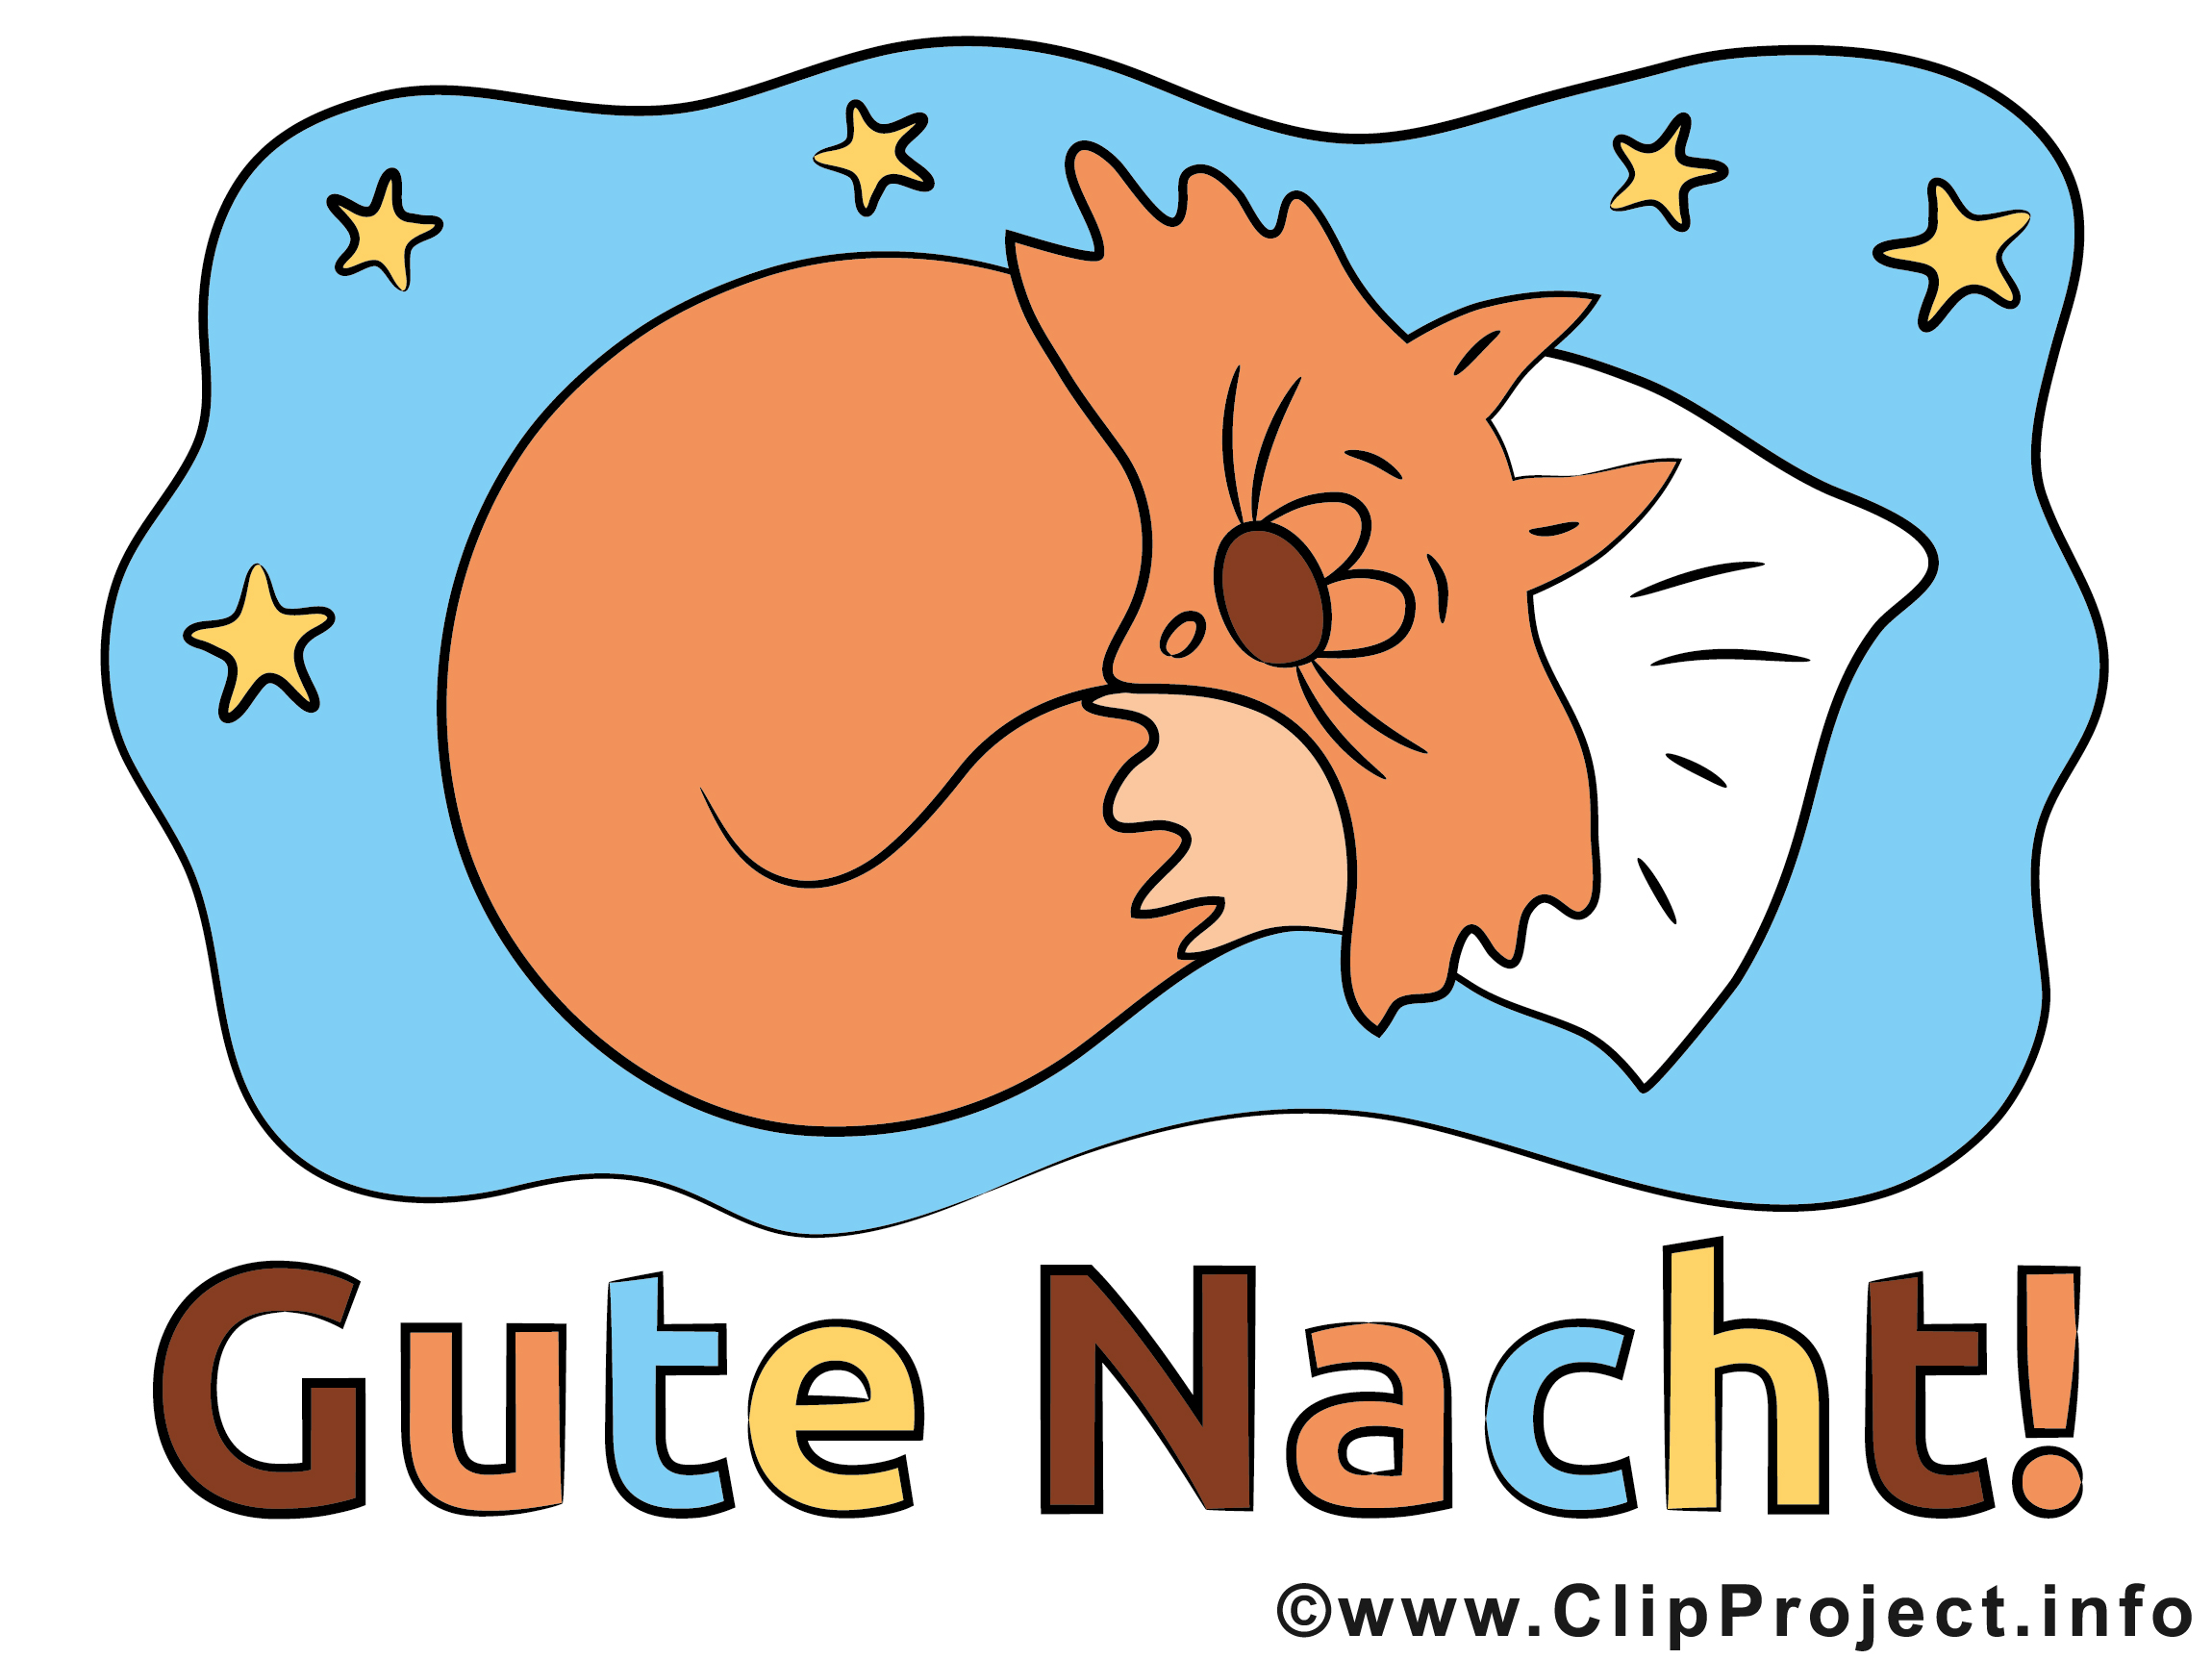 Clipart gute nacht. Clipartfest hase icon nchstes